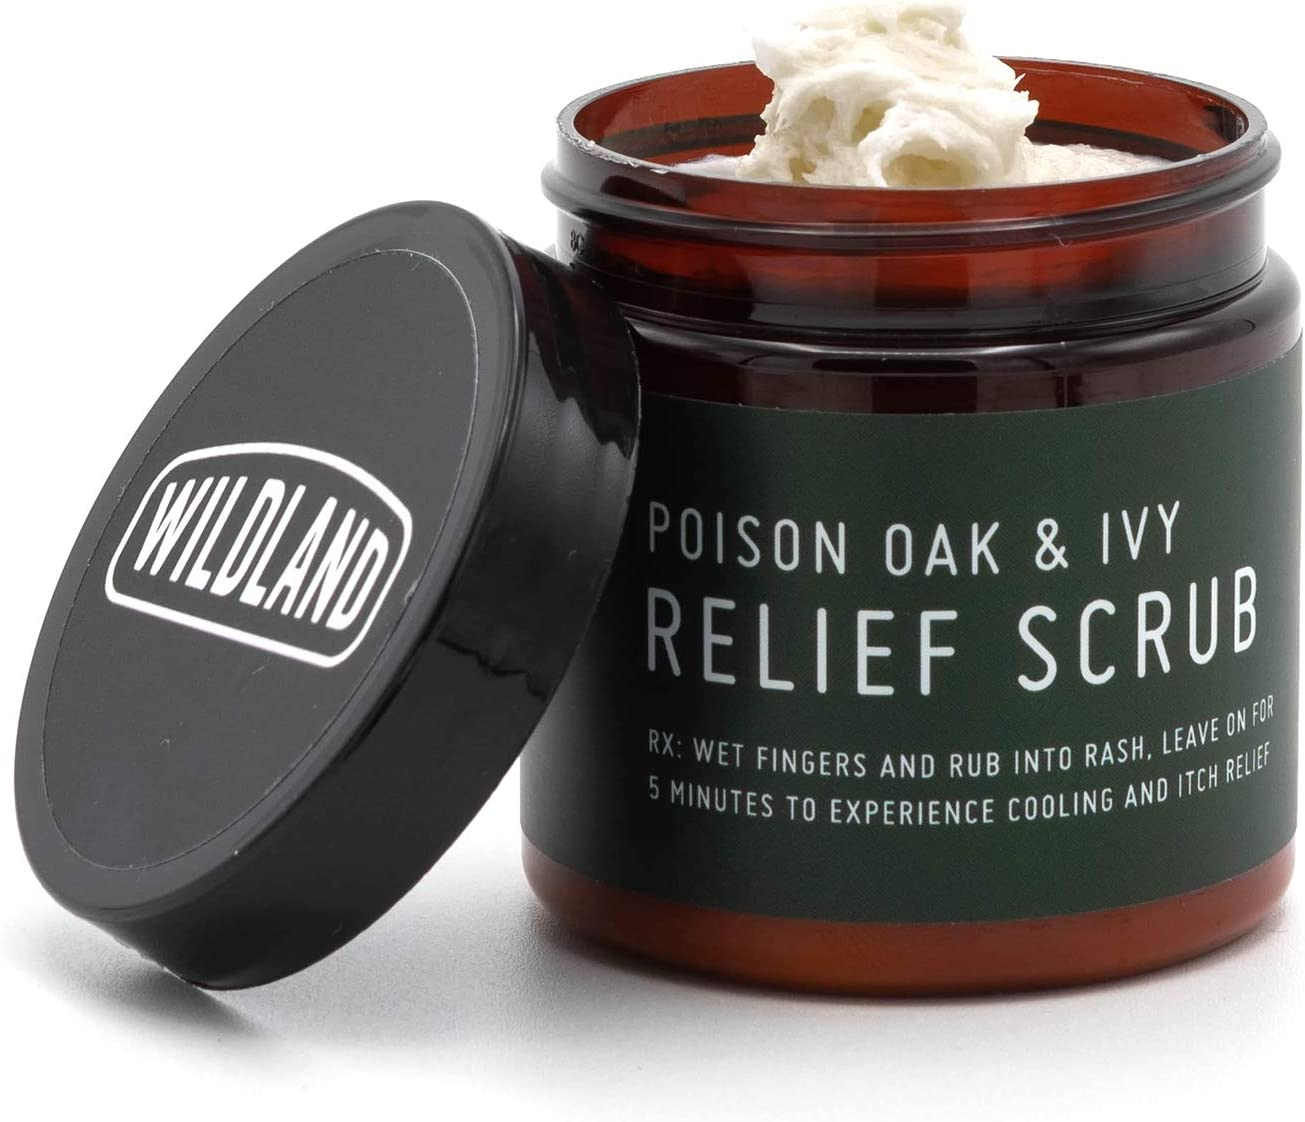 Wildland Poison Oak and Poison Ivy Itch Relief Treatment Scrub | Provides Immediate Itch Relief - Extremely Effective | Lets You Sleep When You Have The Rash | Natural Ingredients (4 oz)